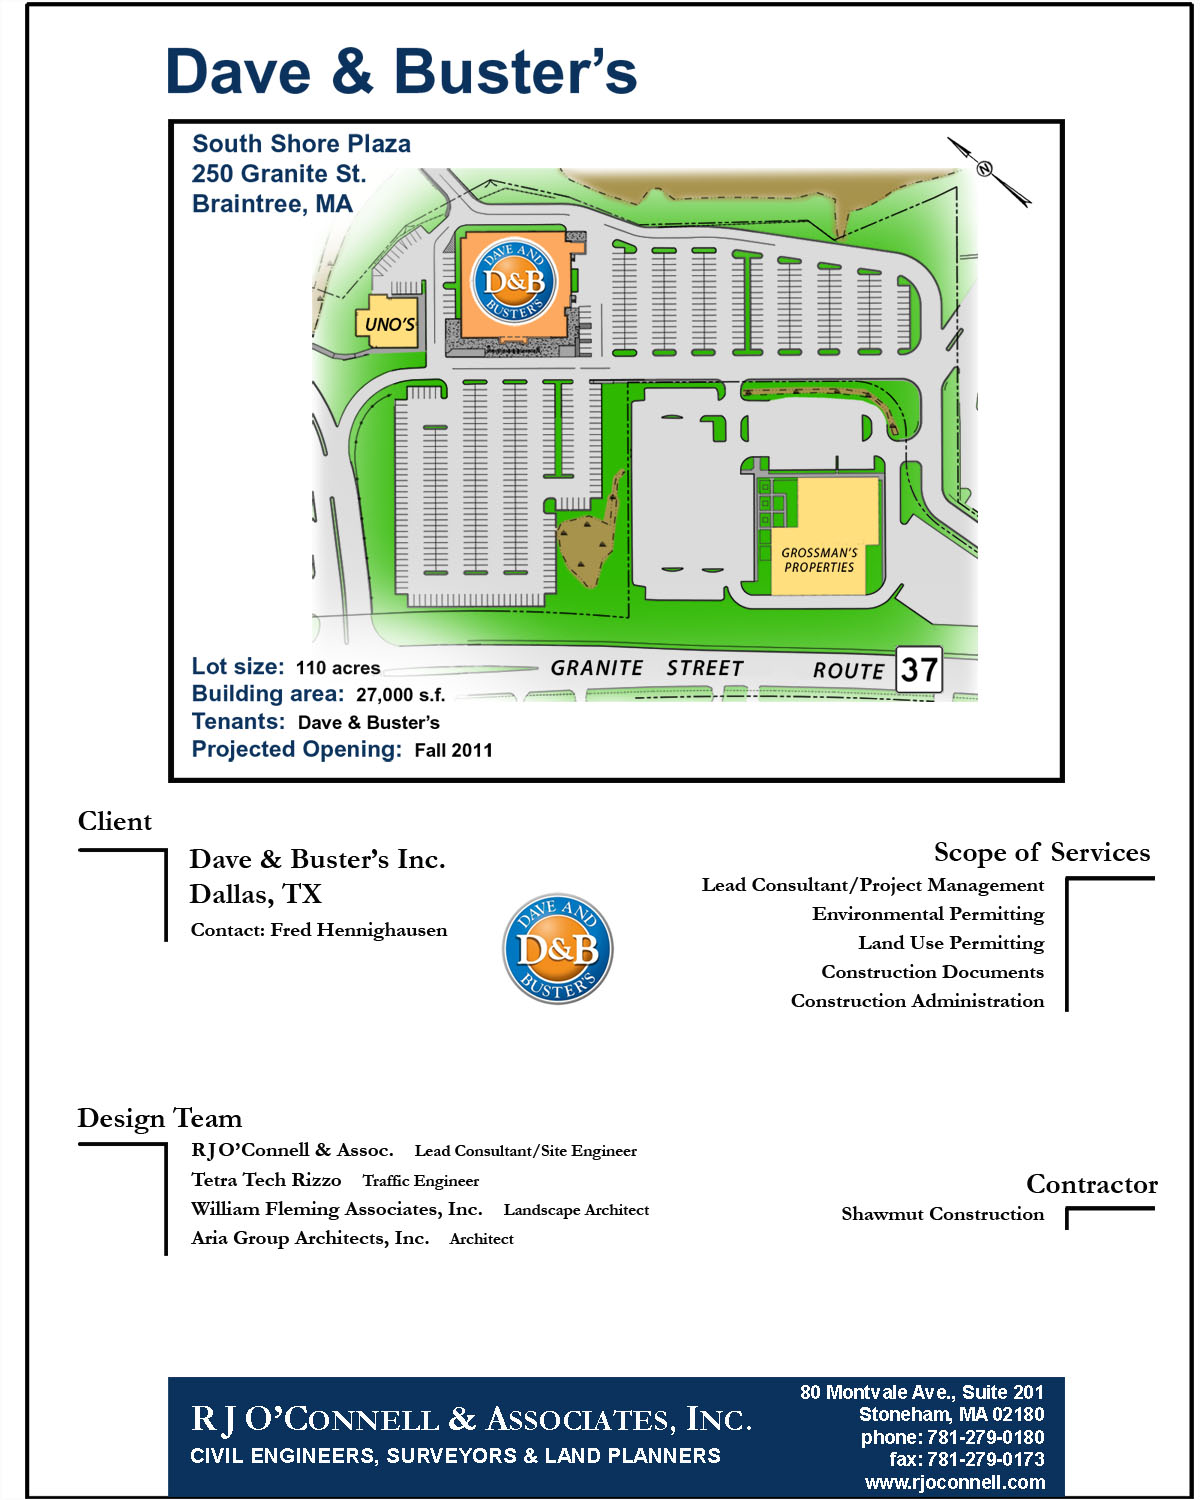 CS-Braintree dave and busters-2011